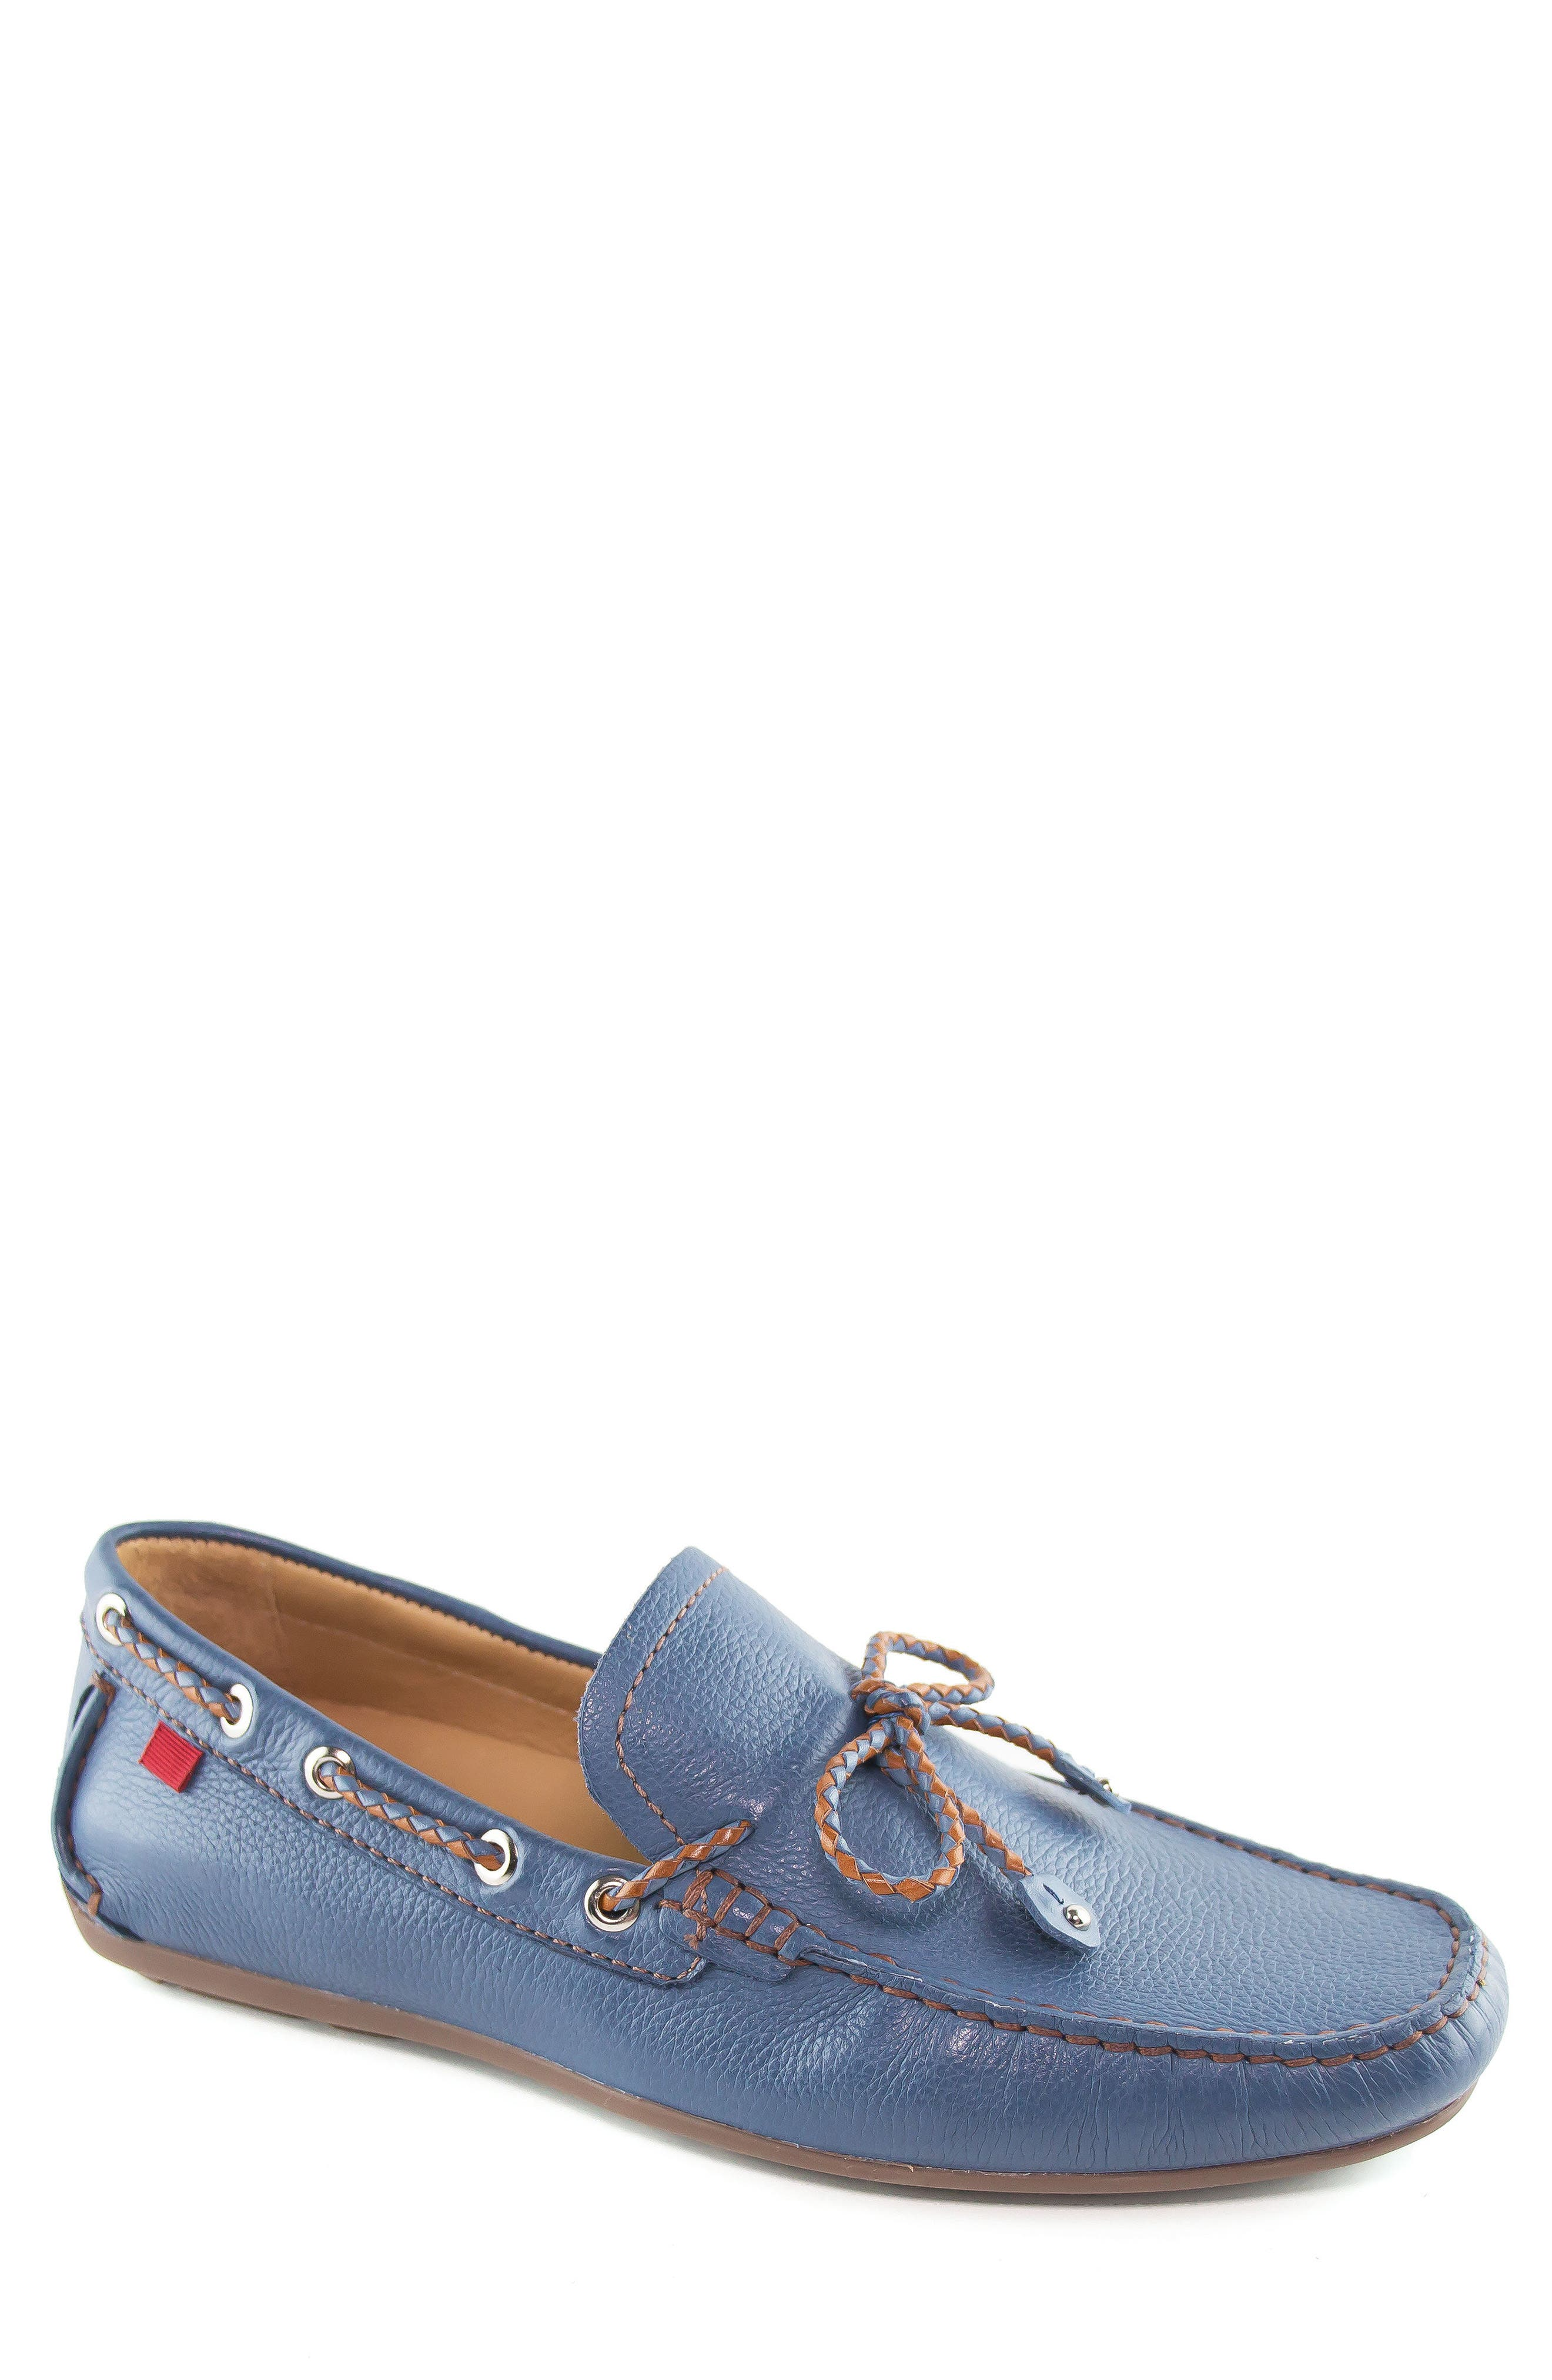 'Cypress' Moccasin,                         Main,                         color, 498